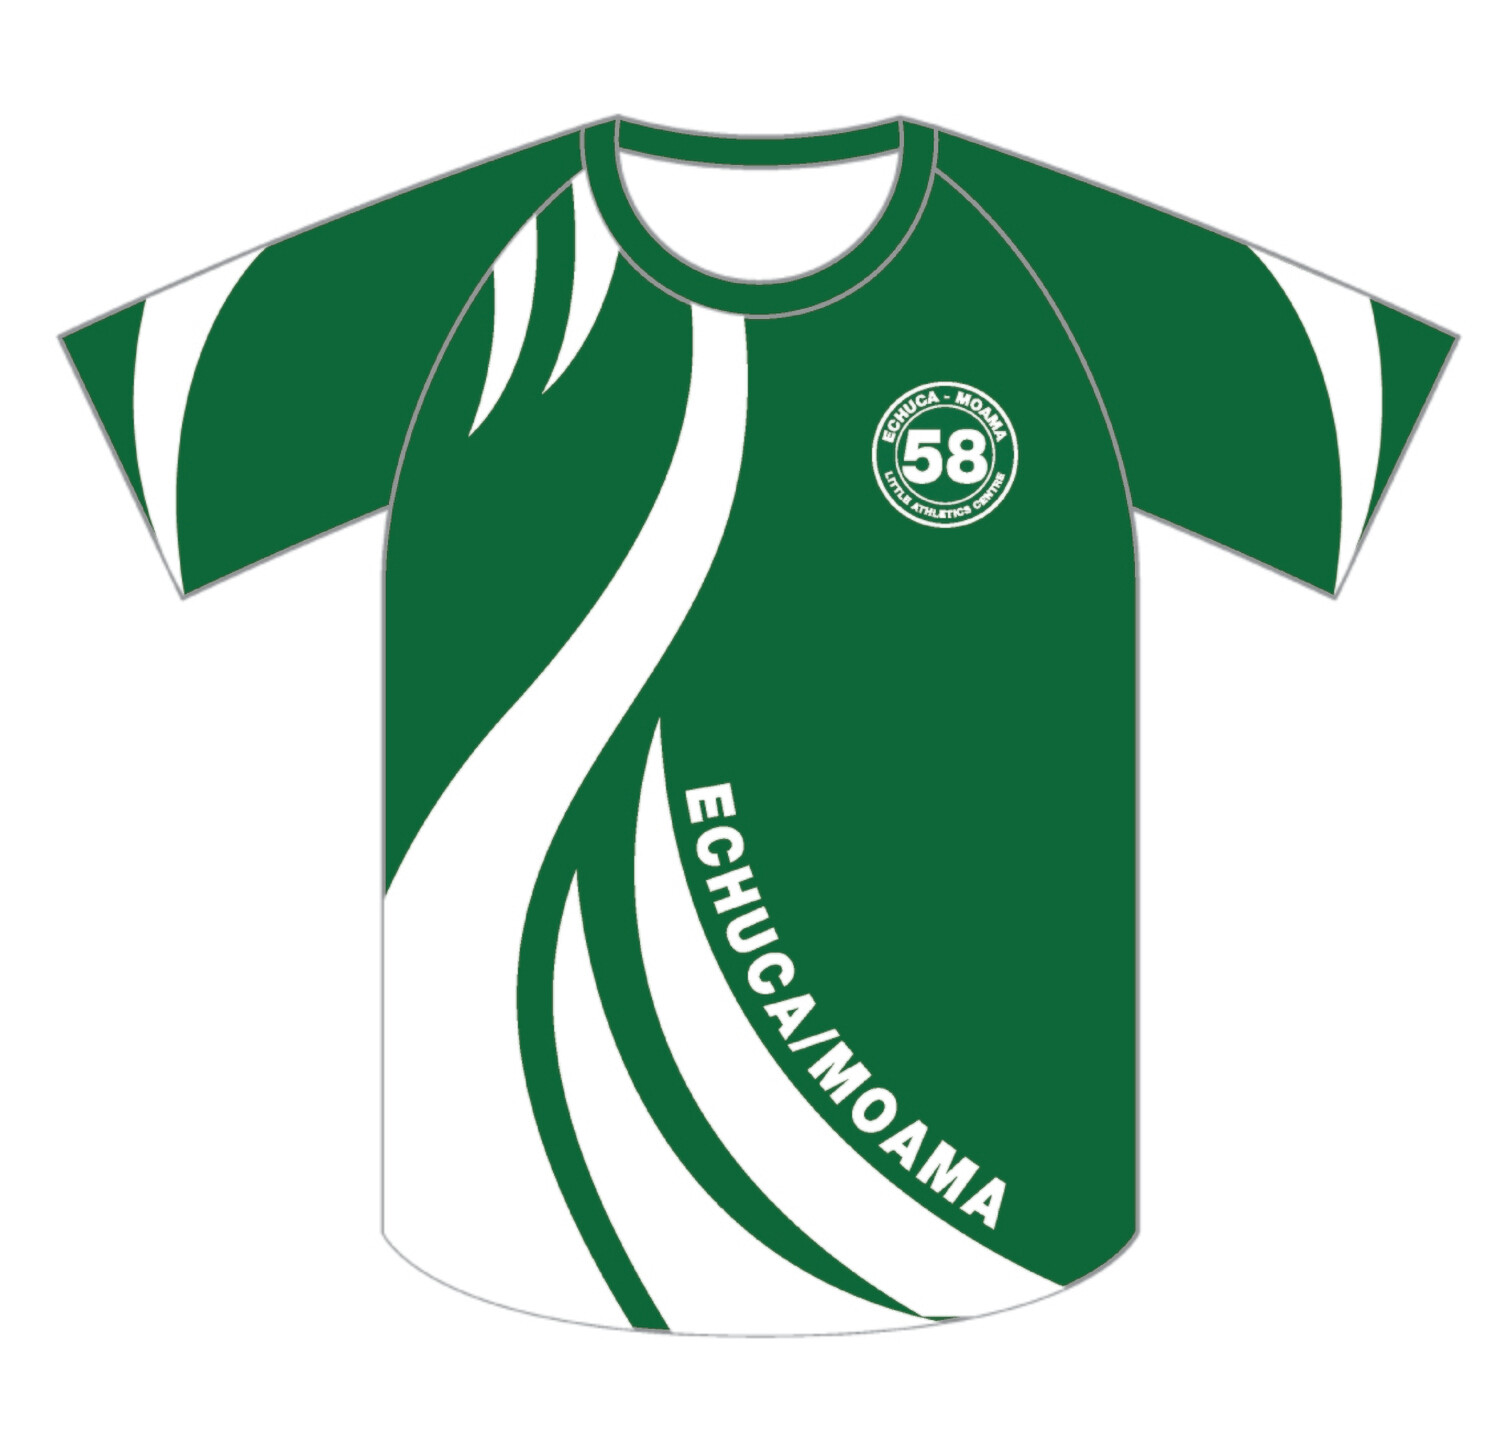 Training/Warm Up T-Shirts - WITH/WITHOUT NAME - PRE ORDER ONLY